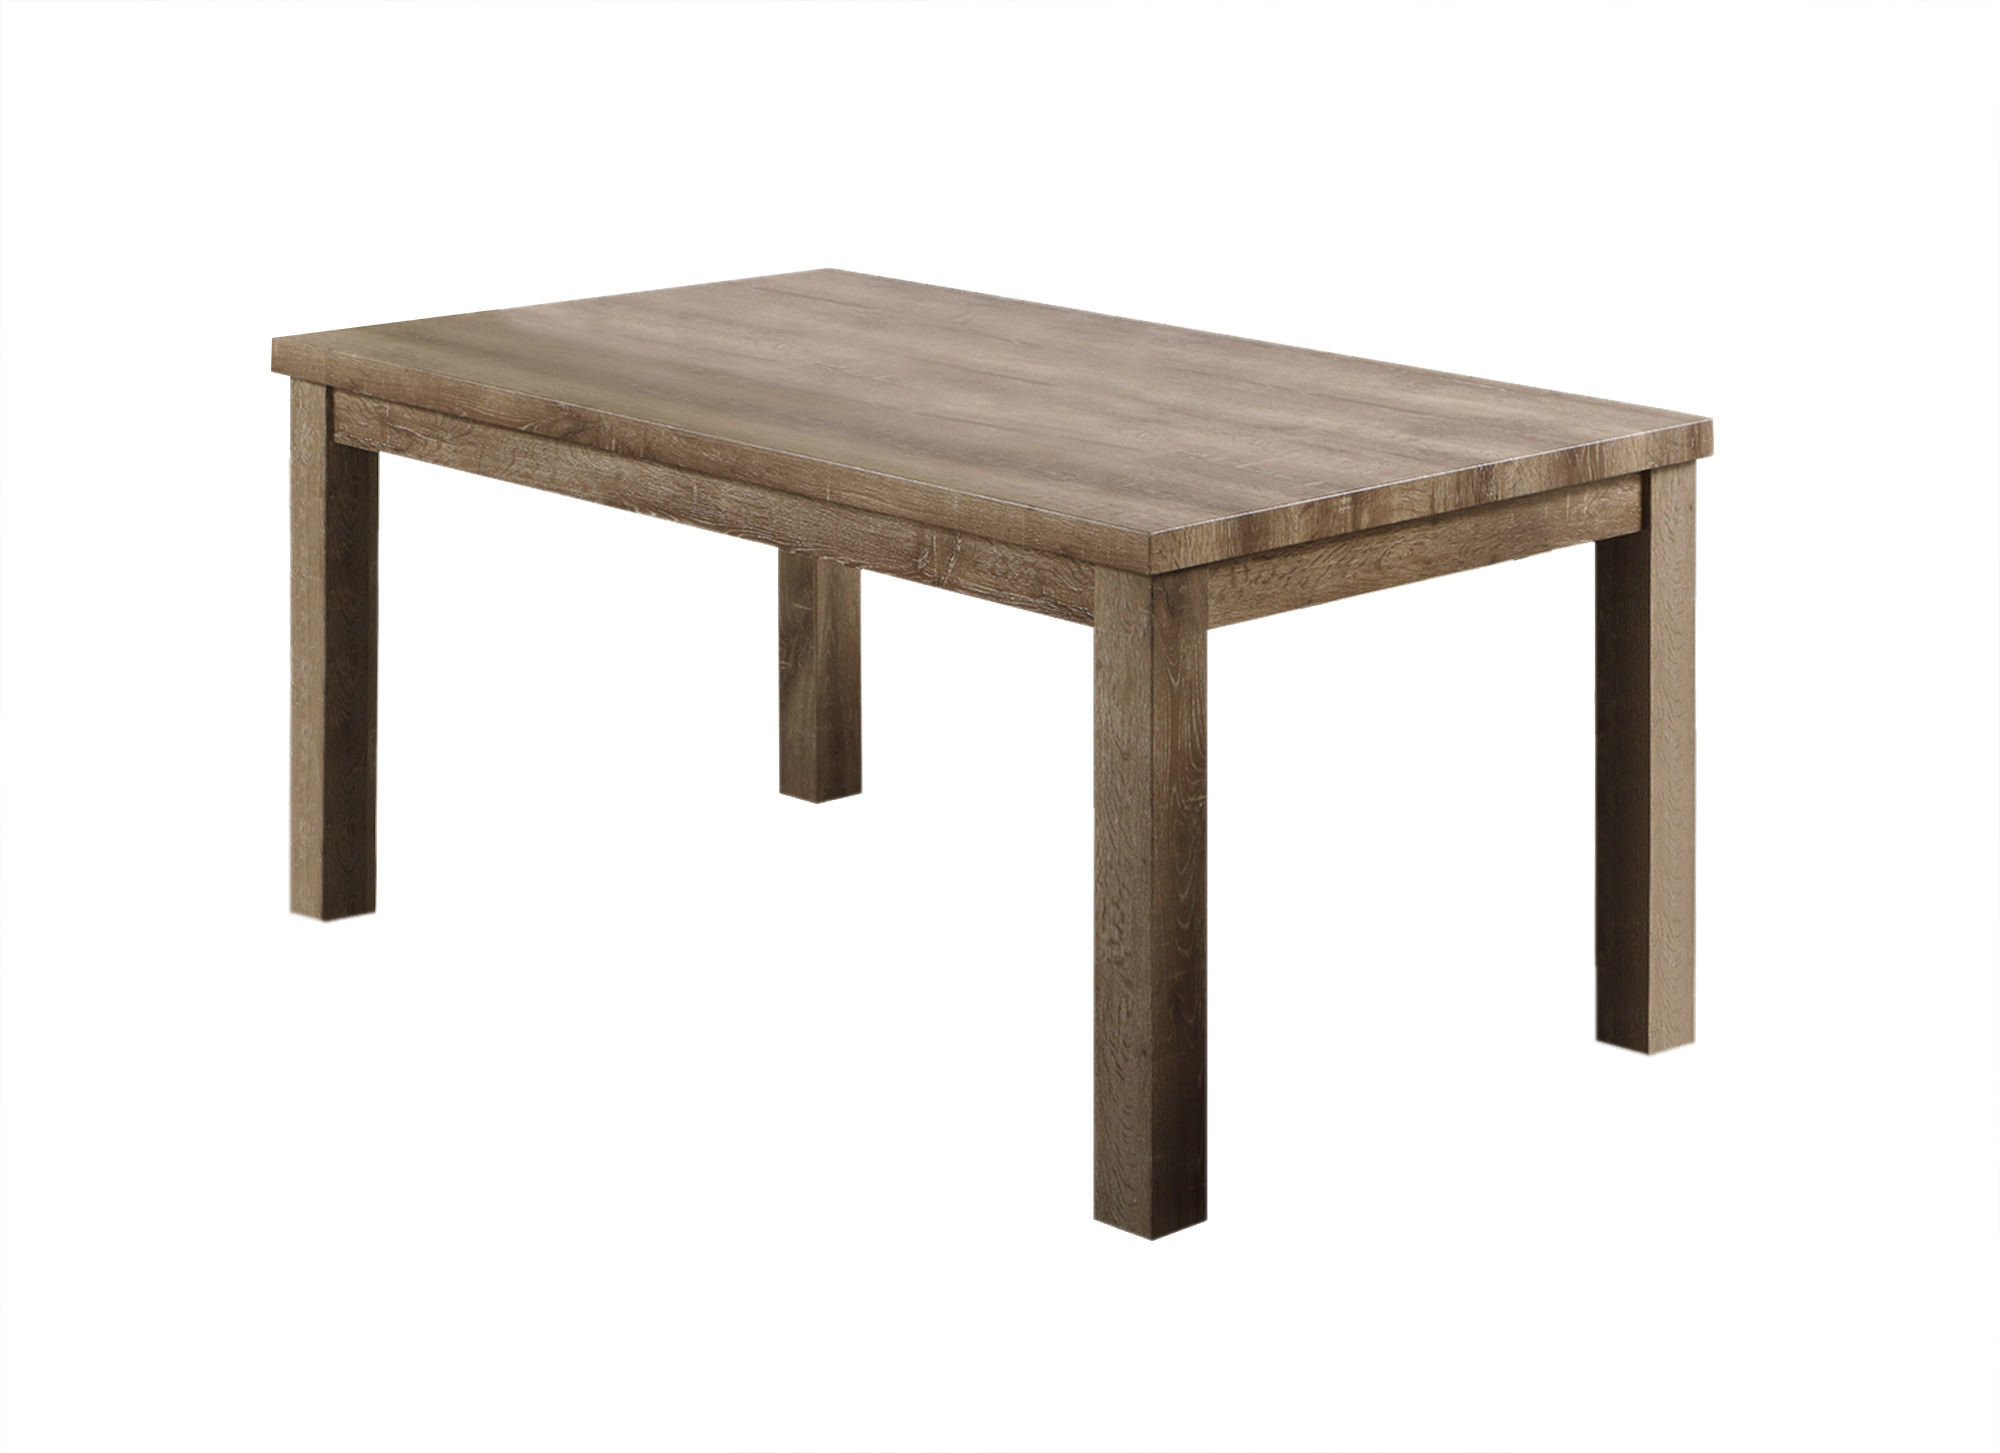 Ephraim 5 Piece Dining Sets Regarding Well Known Millwood Pines Ephraim Dining Table & Reviews (View 7 of 25)